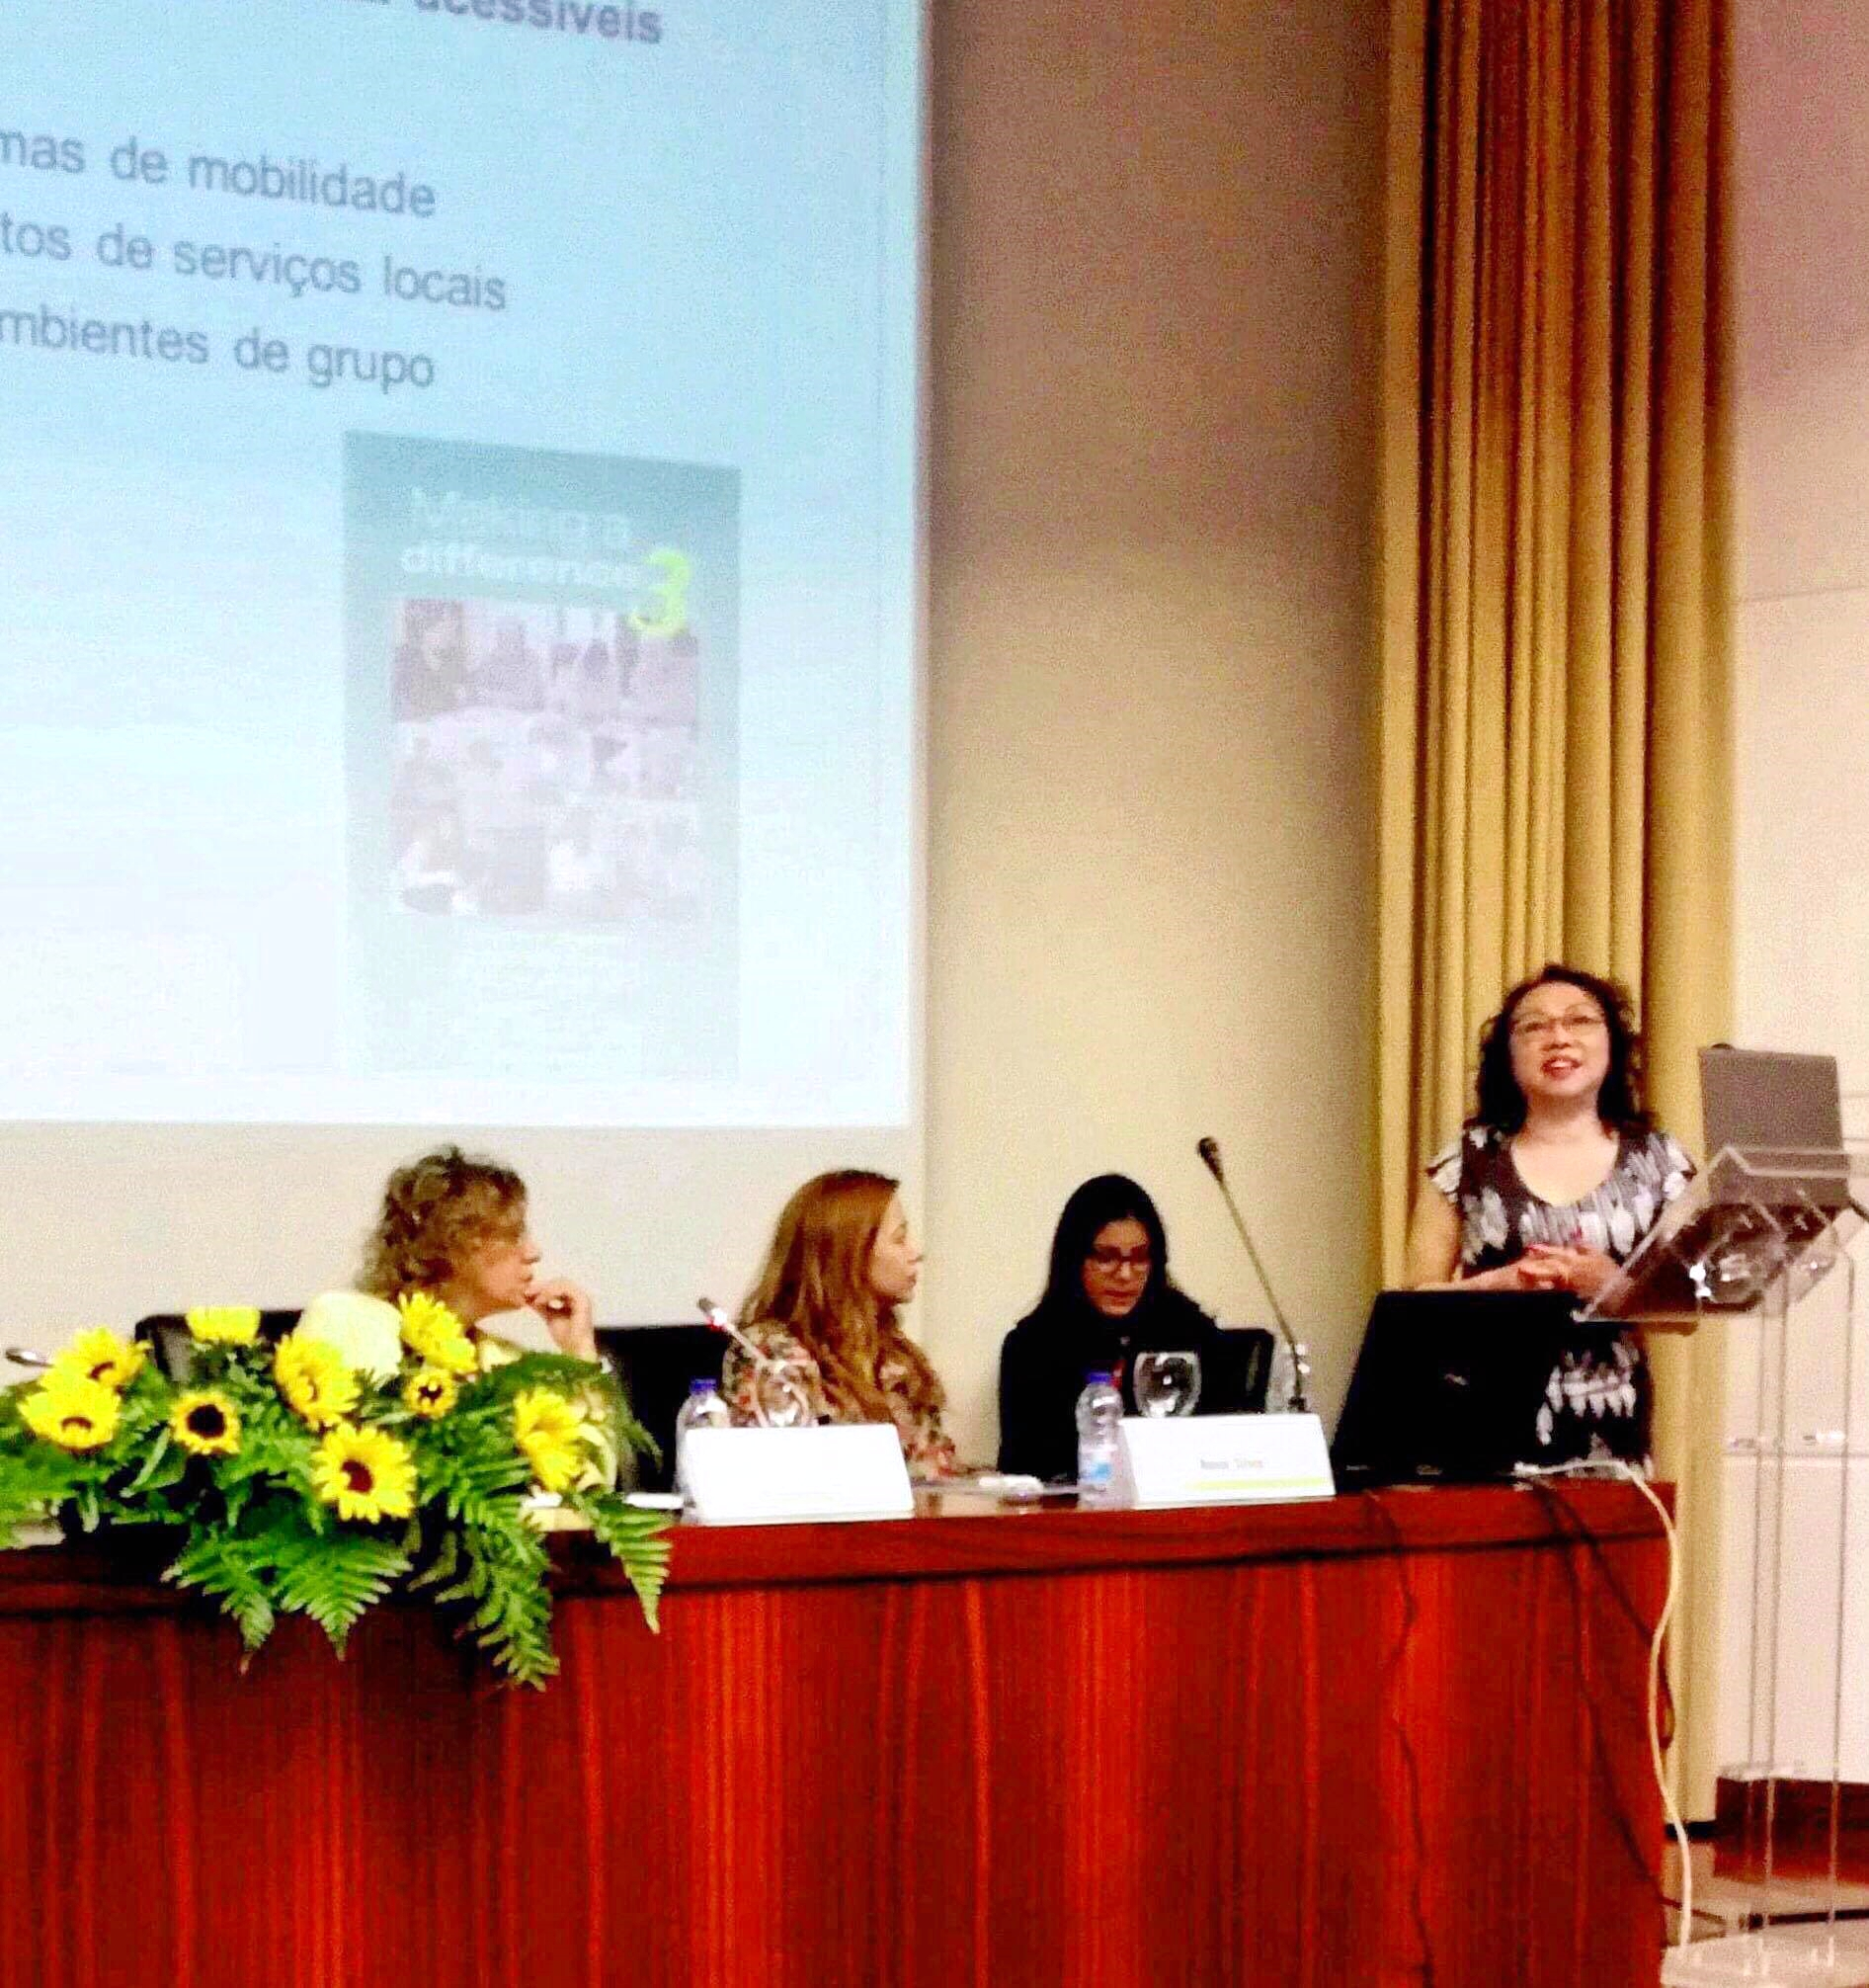 """Dr Phuong Leung presented """"Making a difference 3"""" individual Cognitive Stimulation Therapy in dementia at the 1st International Colloquium """"Aging, Health and Citizenship"""" conference in Coimbra Portugal"""